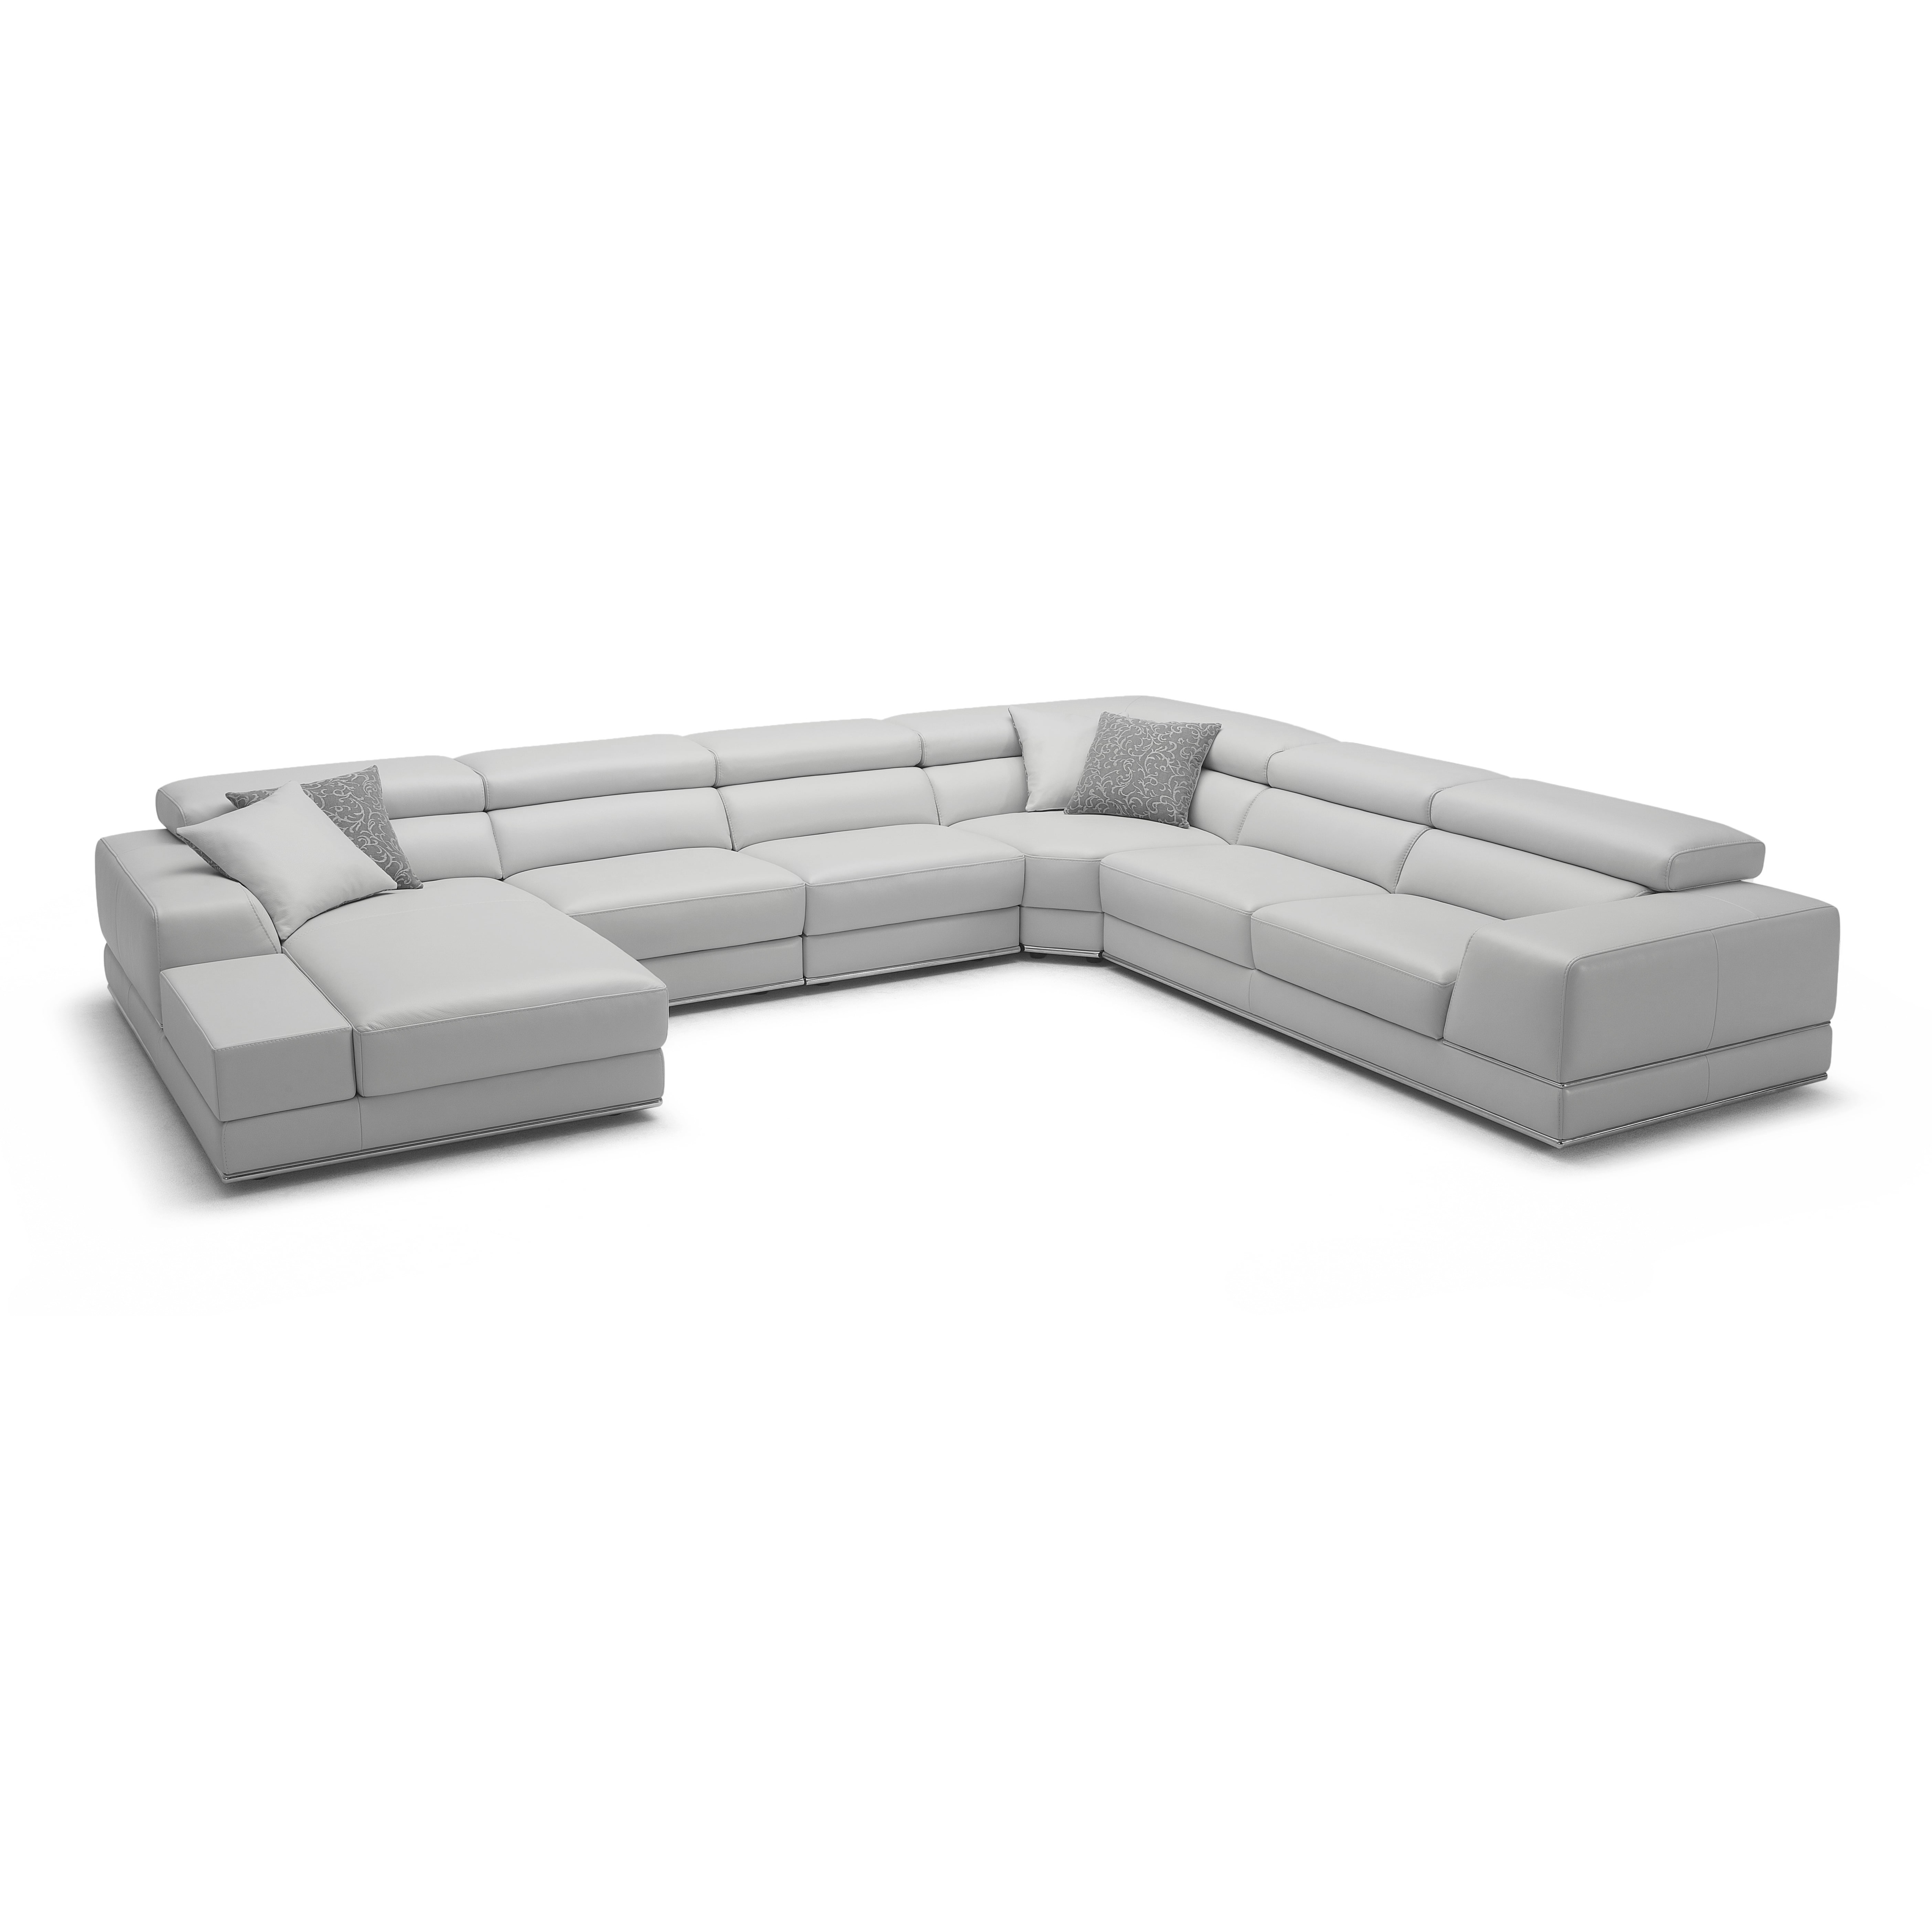 Most Up To Date El Paso Texas Sectional Sofas With Furniture: Mesmerizing Costco Sectionals Sofa For Cozy Living Room (View 18 of 20)